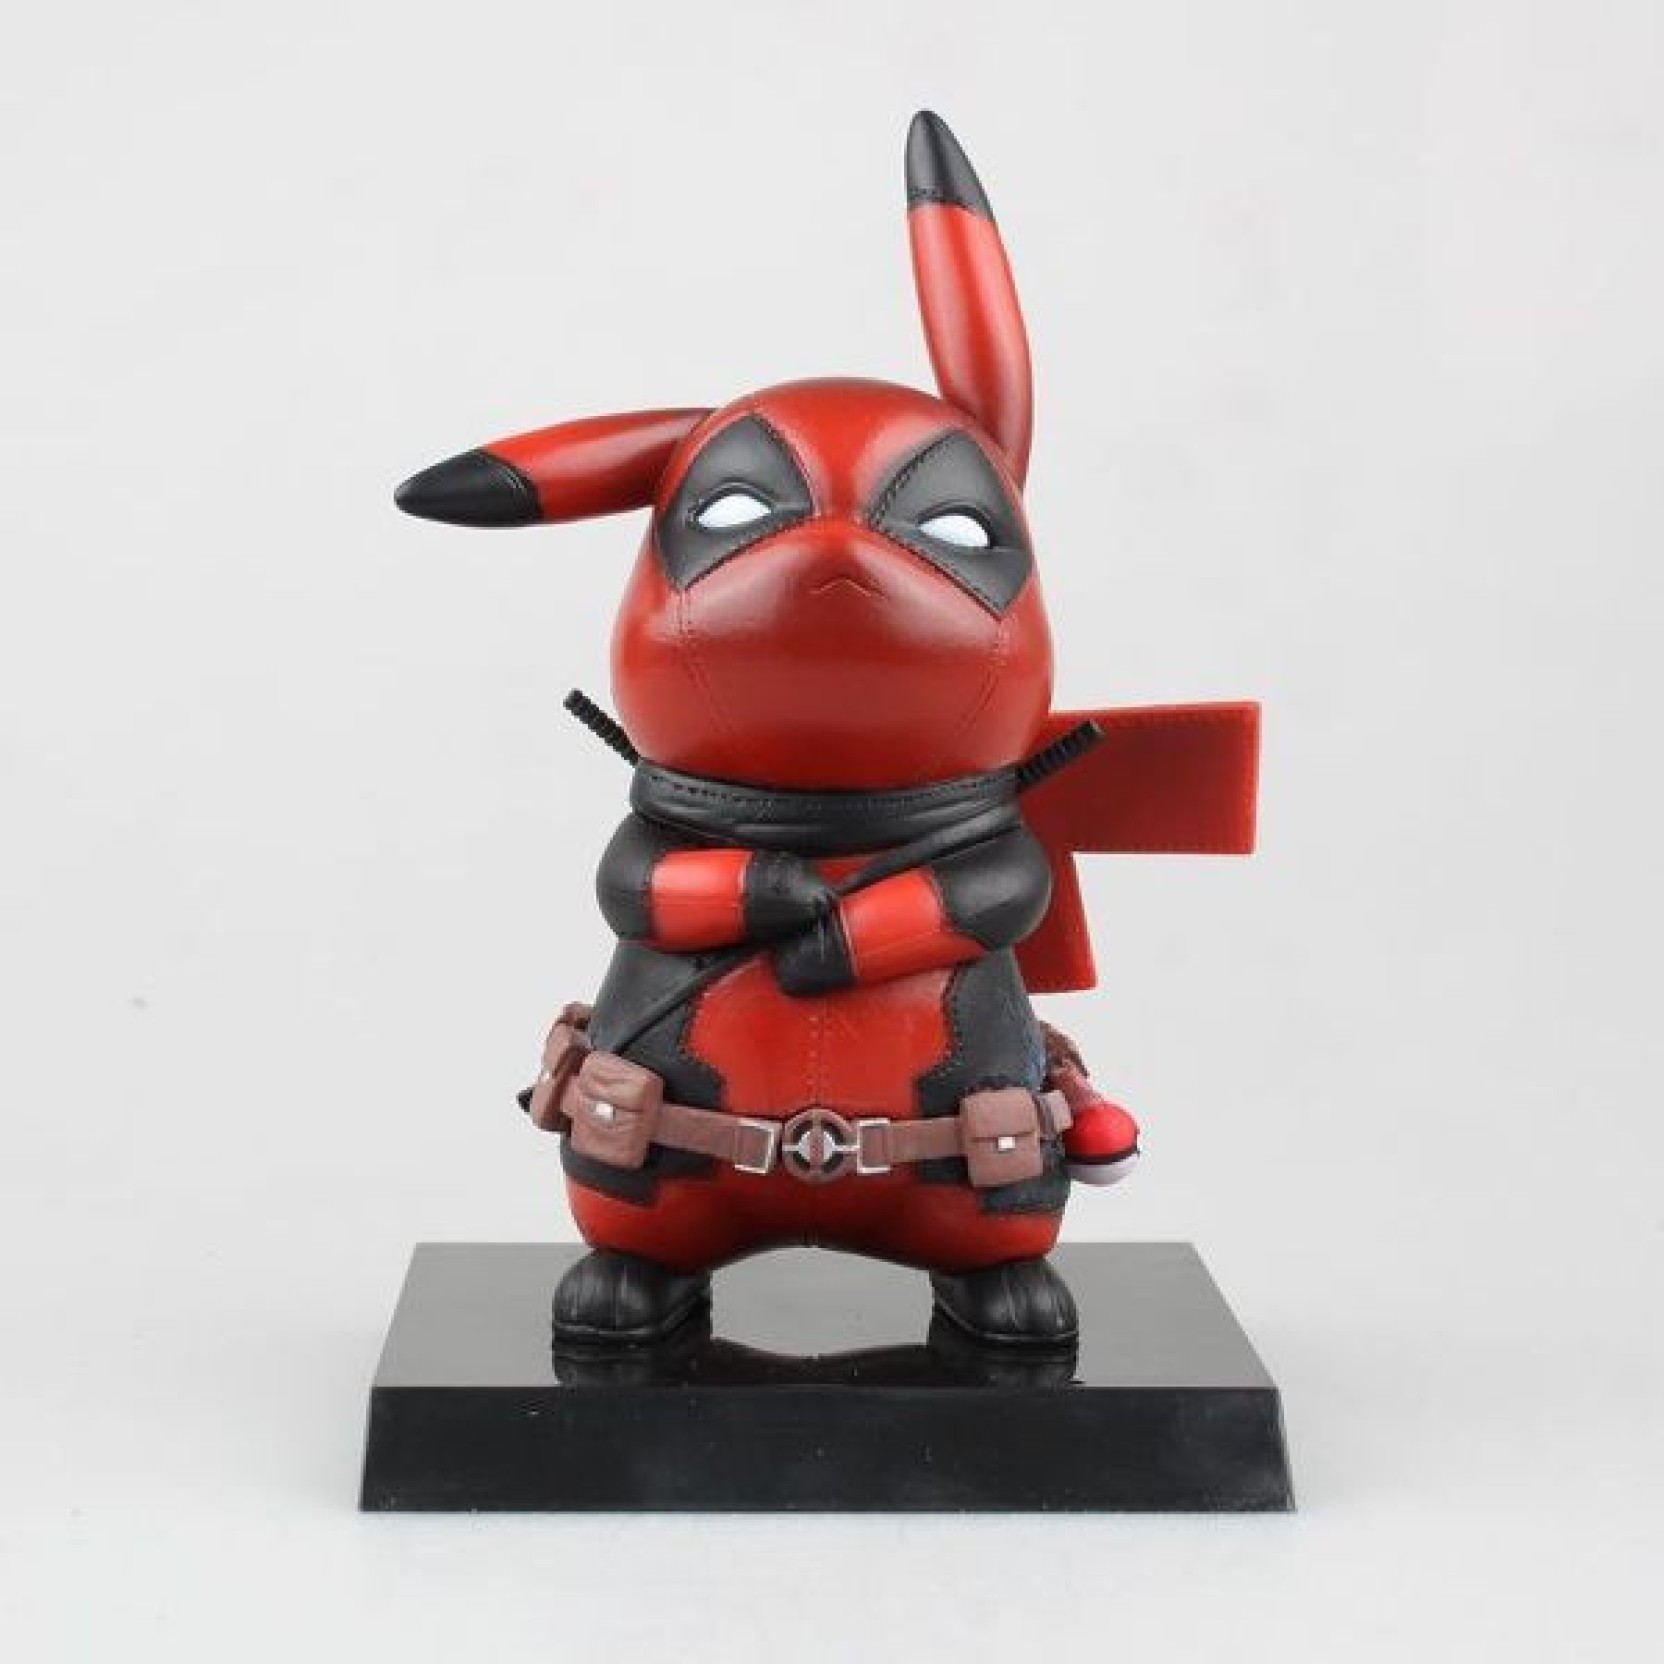 adba1d06a ZenShanti Deadpool Pikachu Mini PVC Statuette Action Figure Toy | First  Edition | 10 cm (Red)